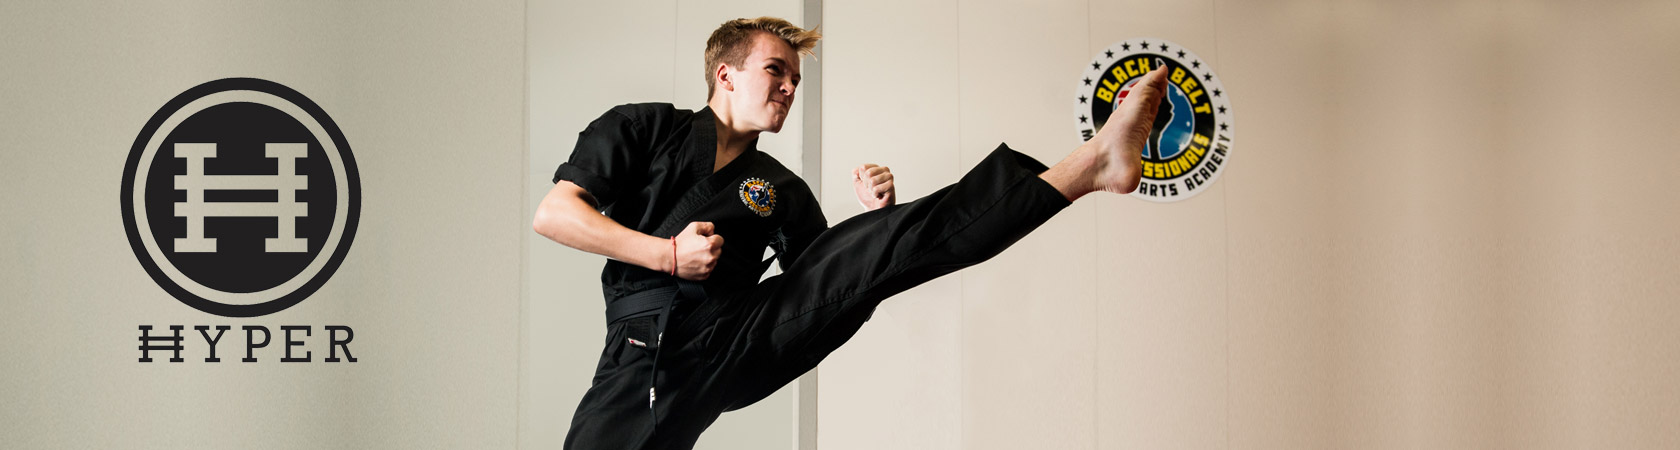 Black Belt Professionals Martial Arts